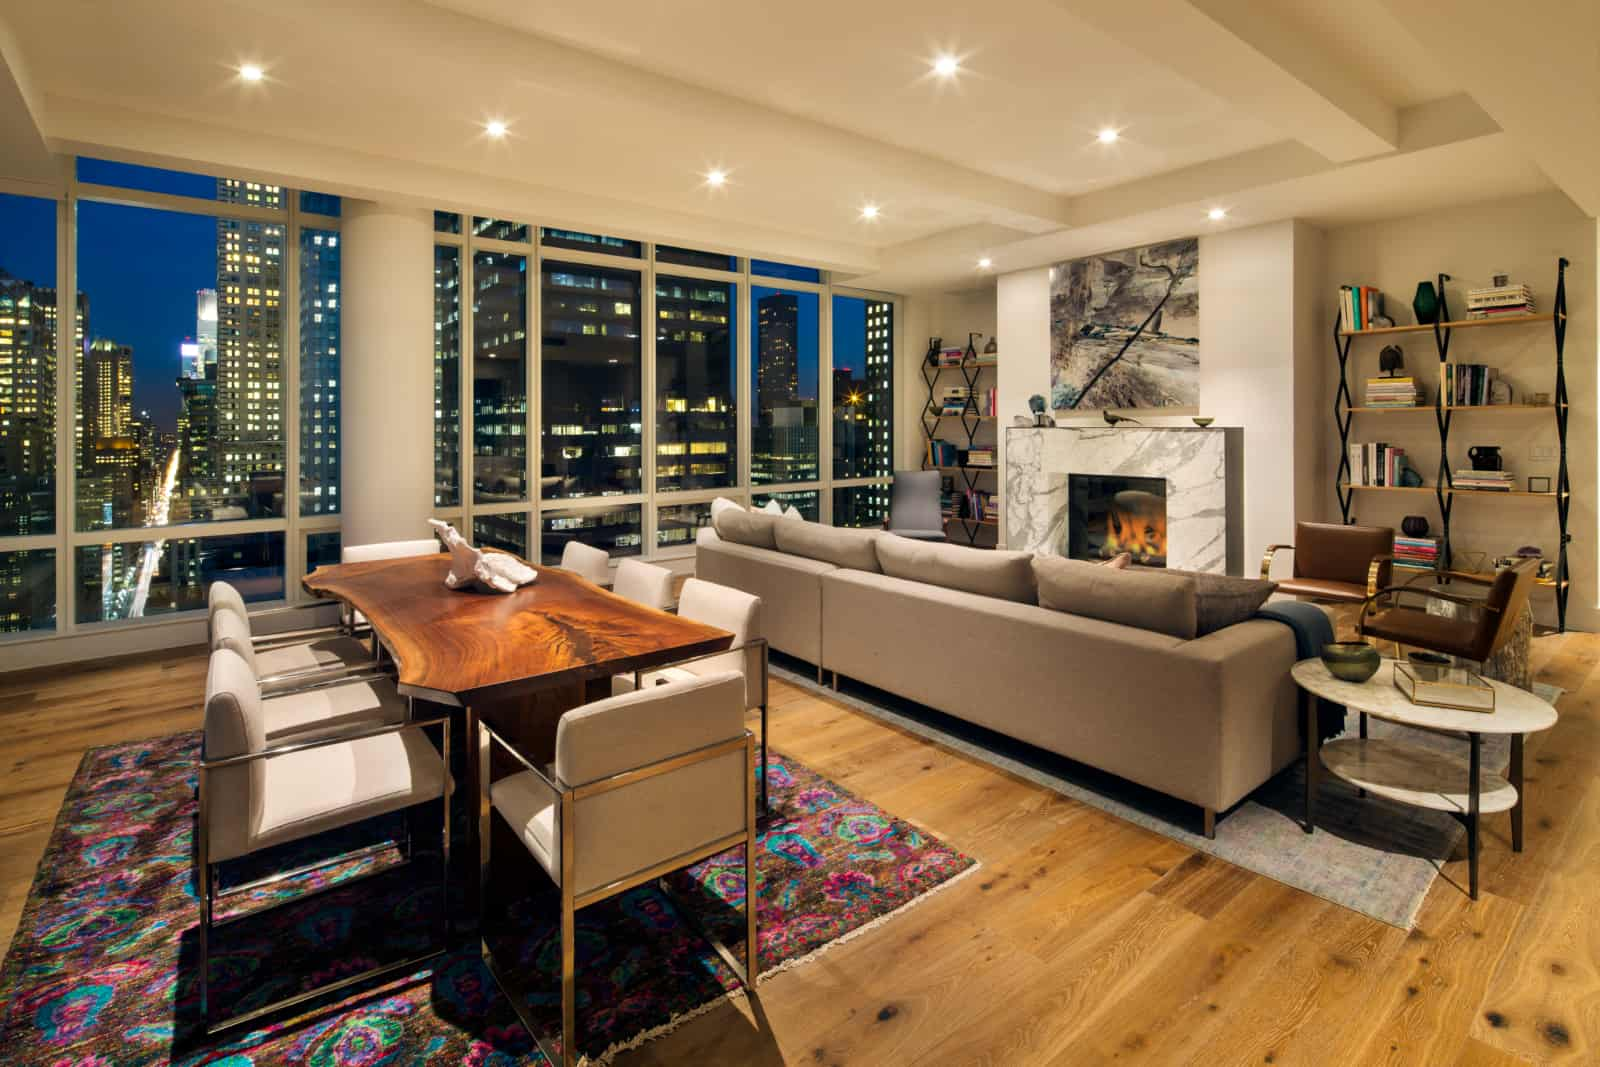 Large open plan apartment with living room area with fireplace, dining table, and large windows with city views.